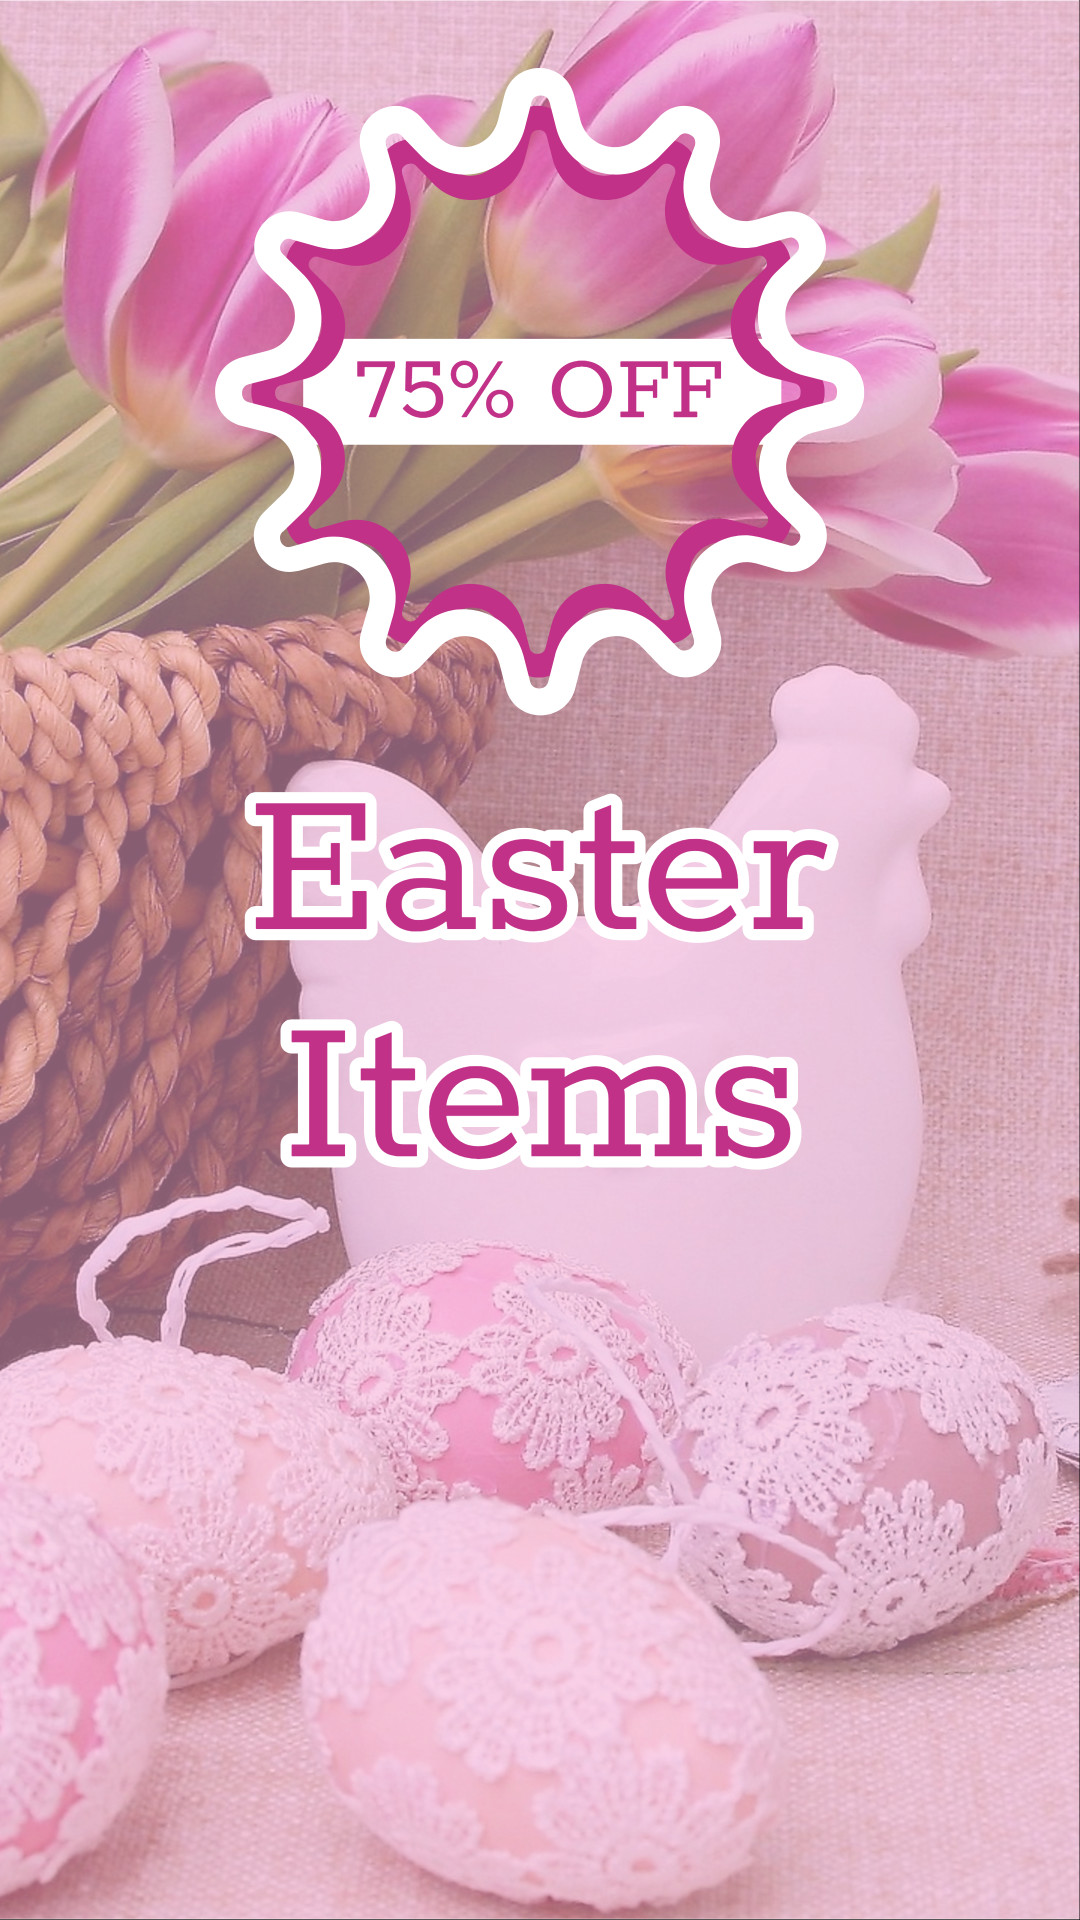 75% off Easter items